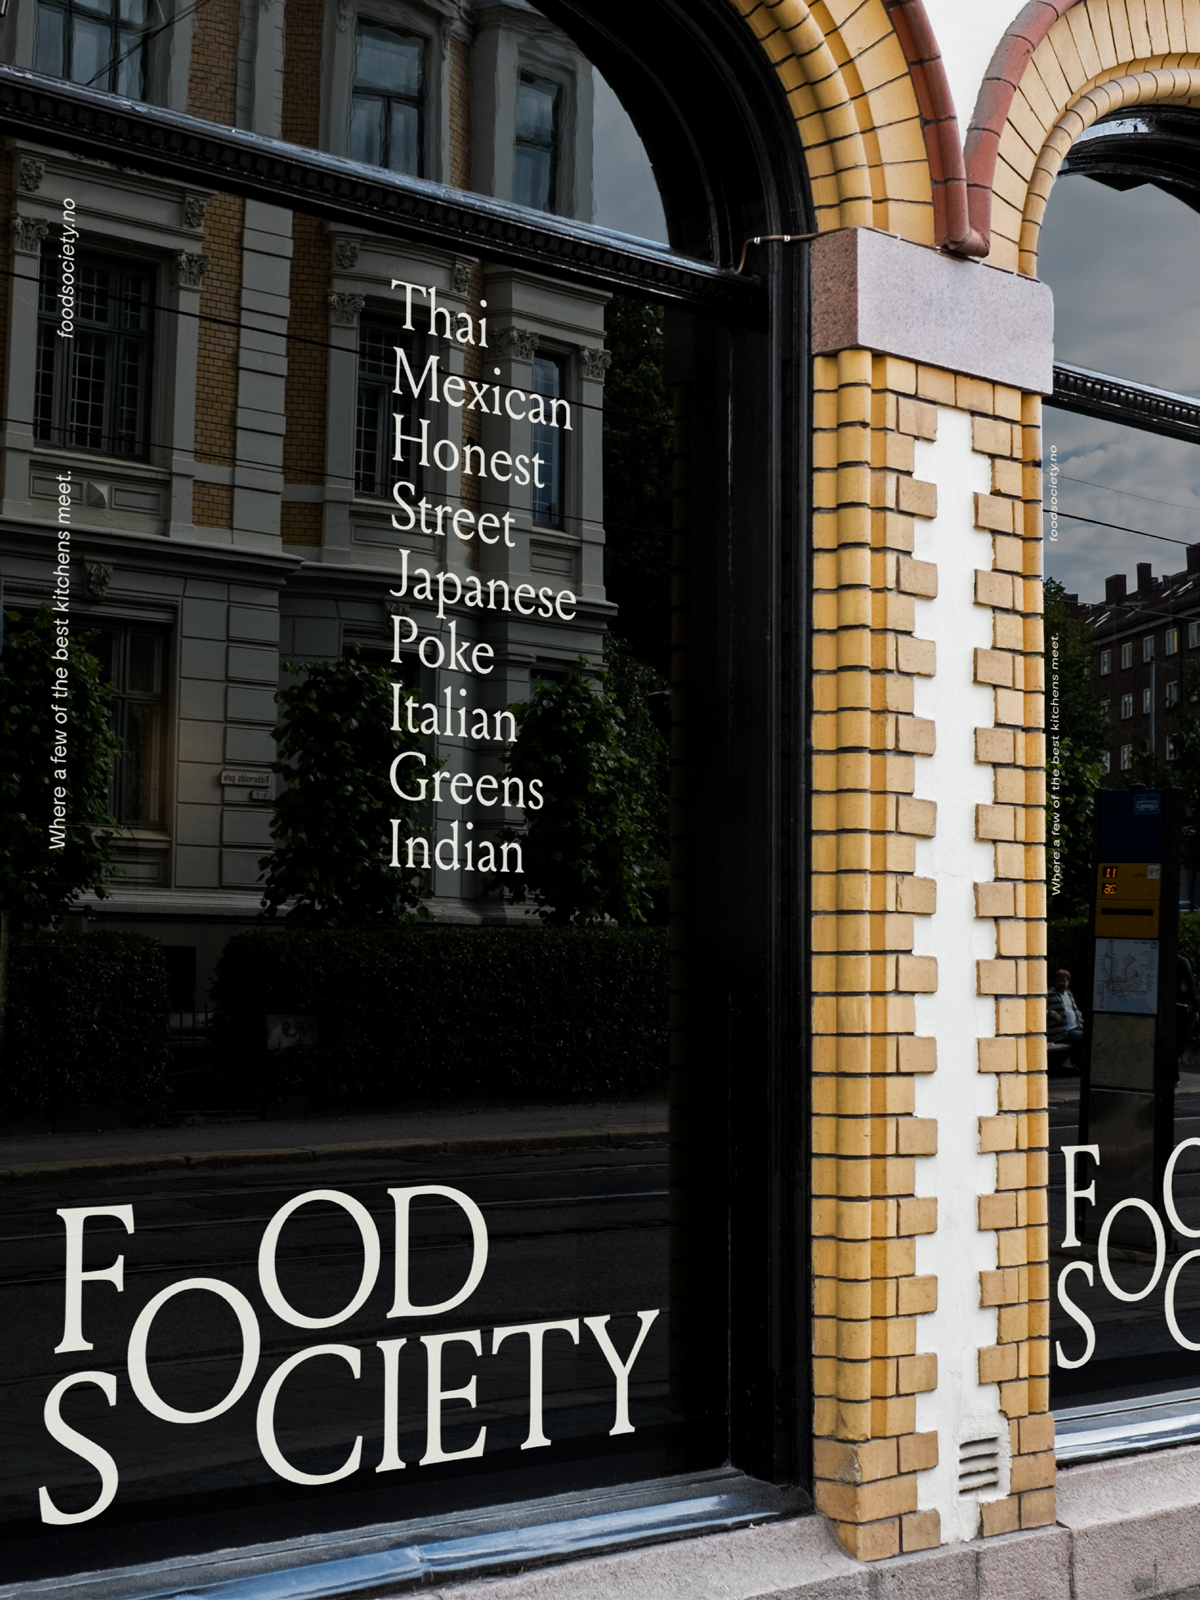 FoodSociety_Window-1